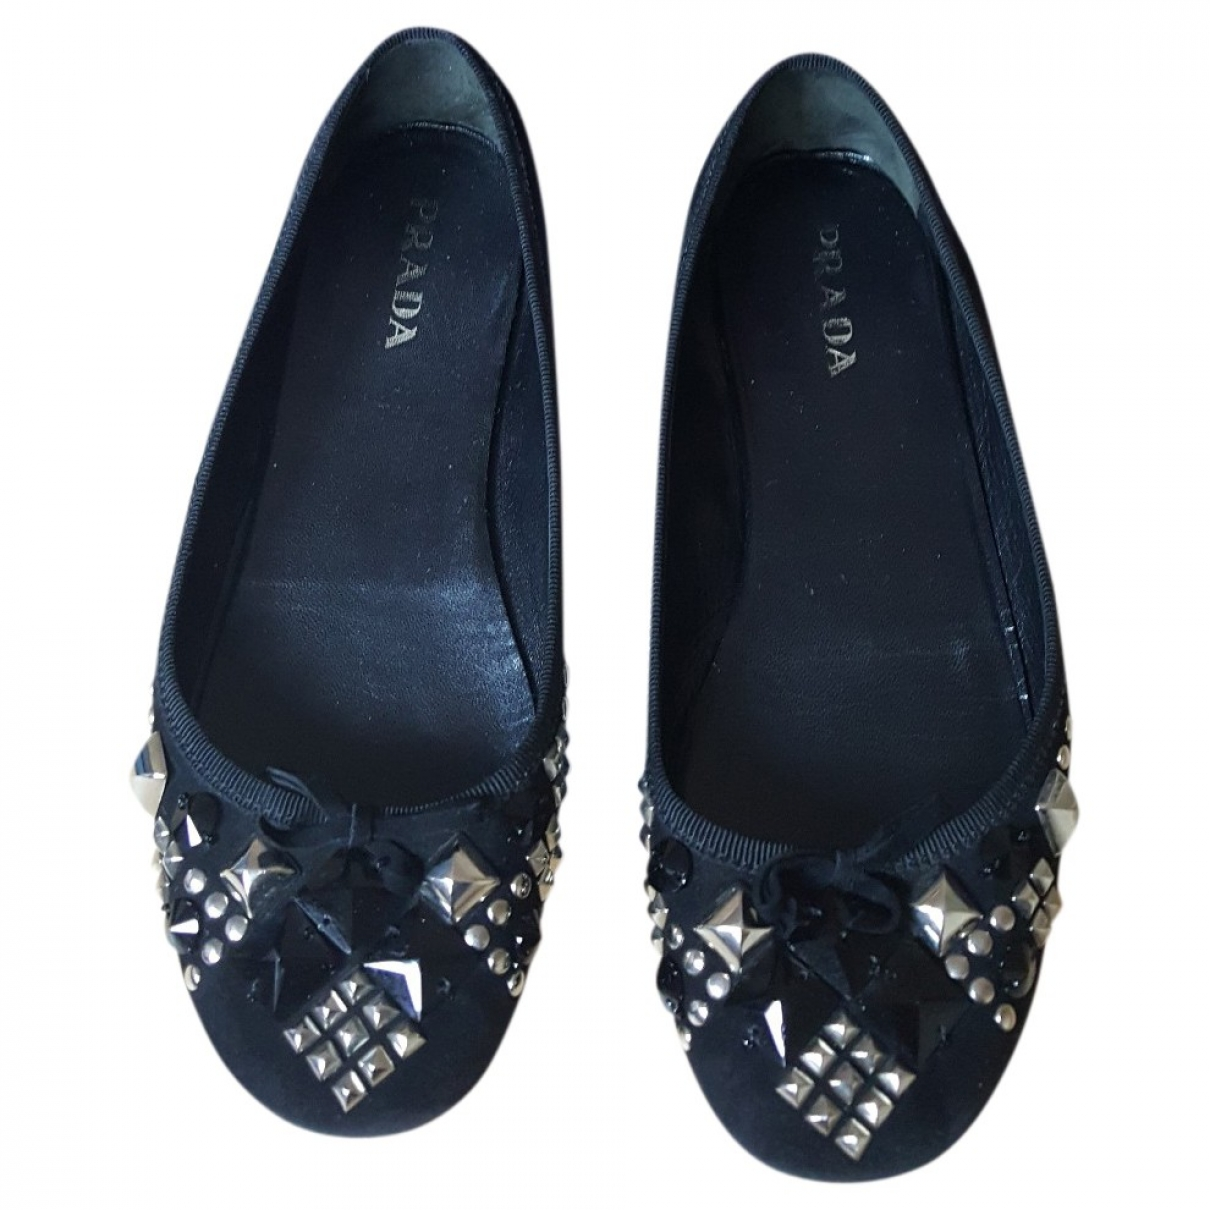 Prada \N Black Leather Ballet flats for Women 36.5 EU